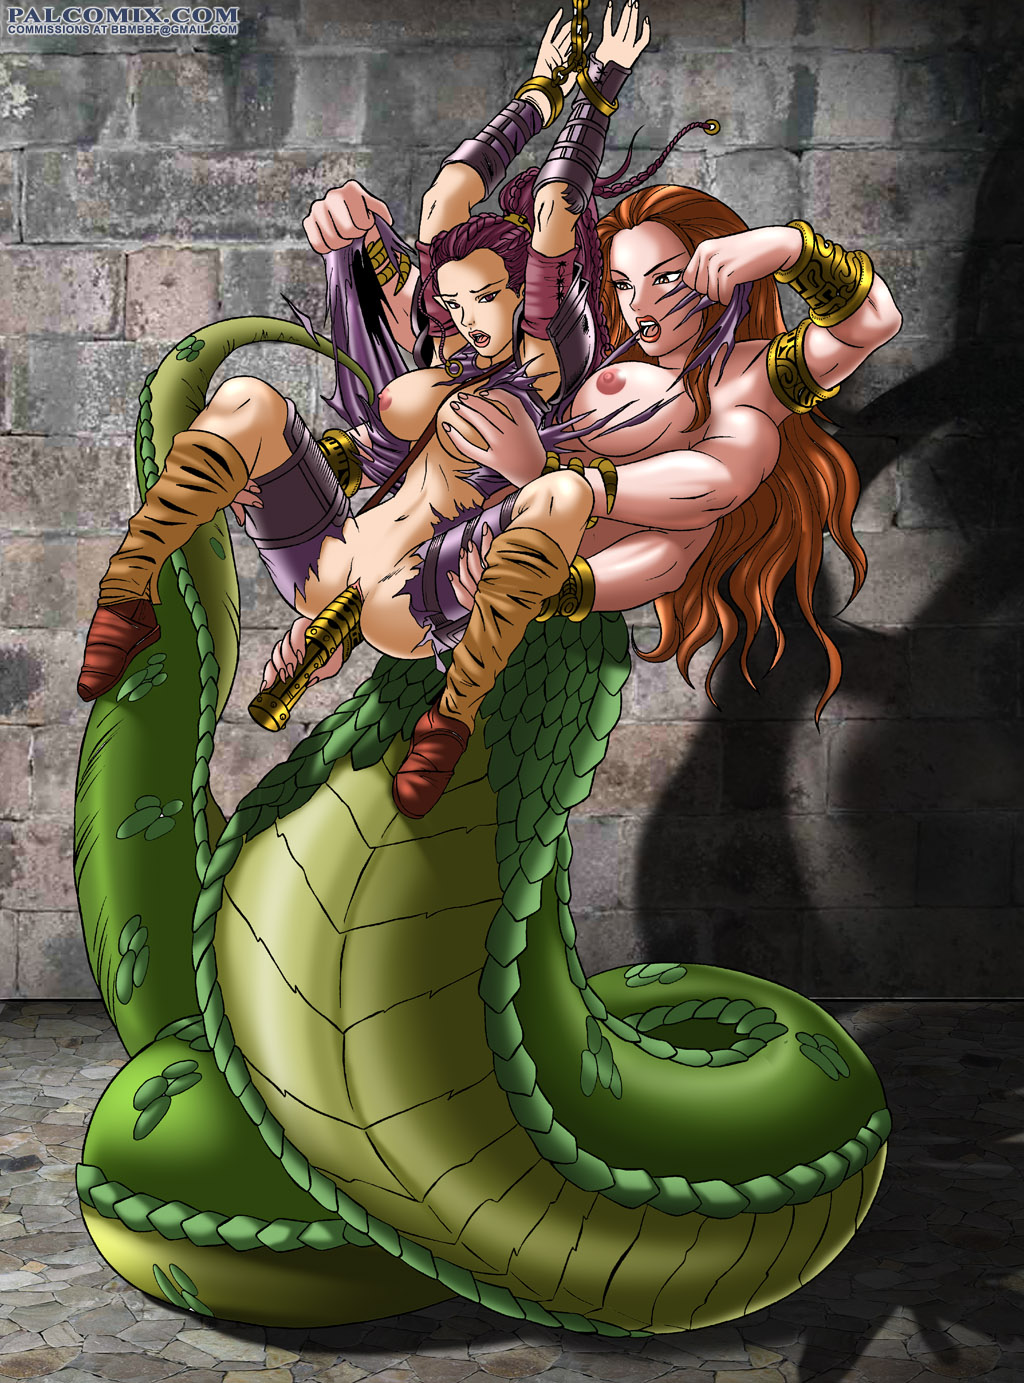 Sexy dungeons and dragons porn cartoon scenes